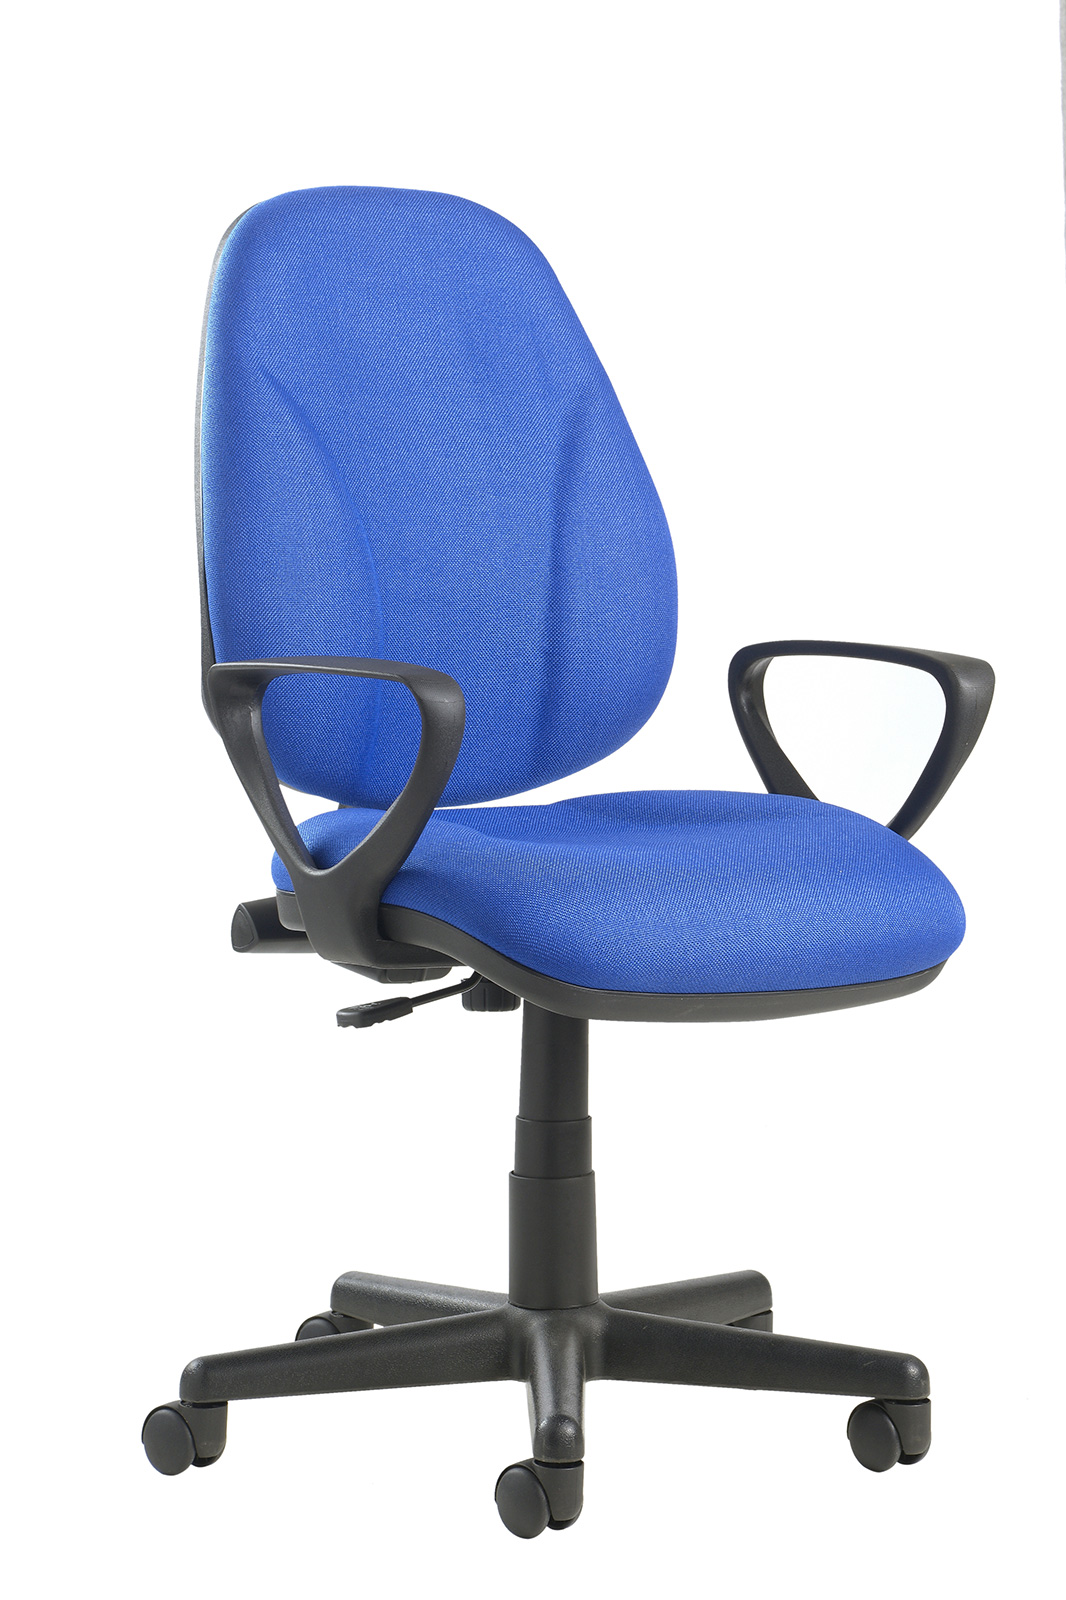 Bilbao fabric operators chair with lumbar support and fixed arms - blue